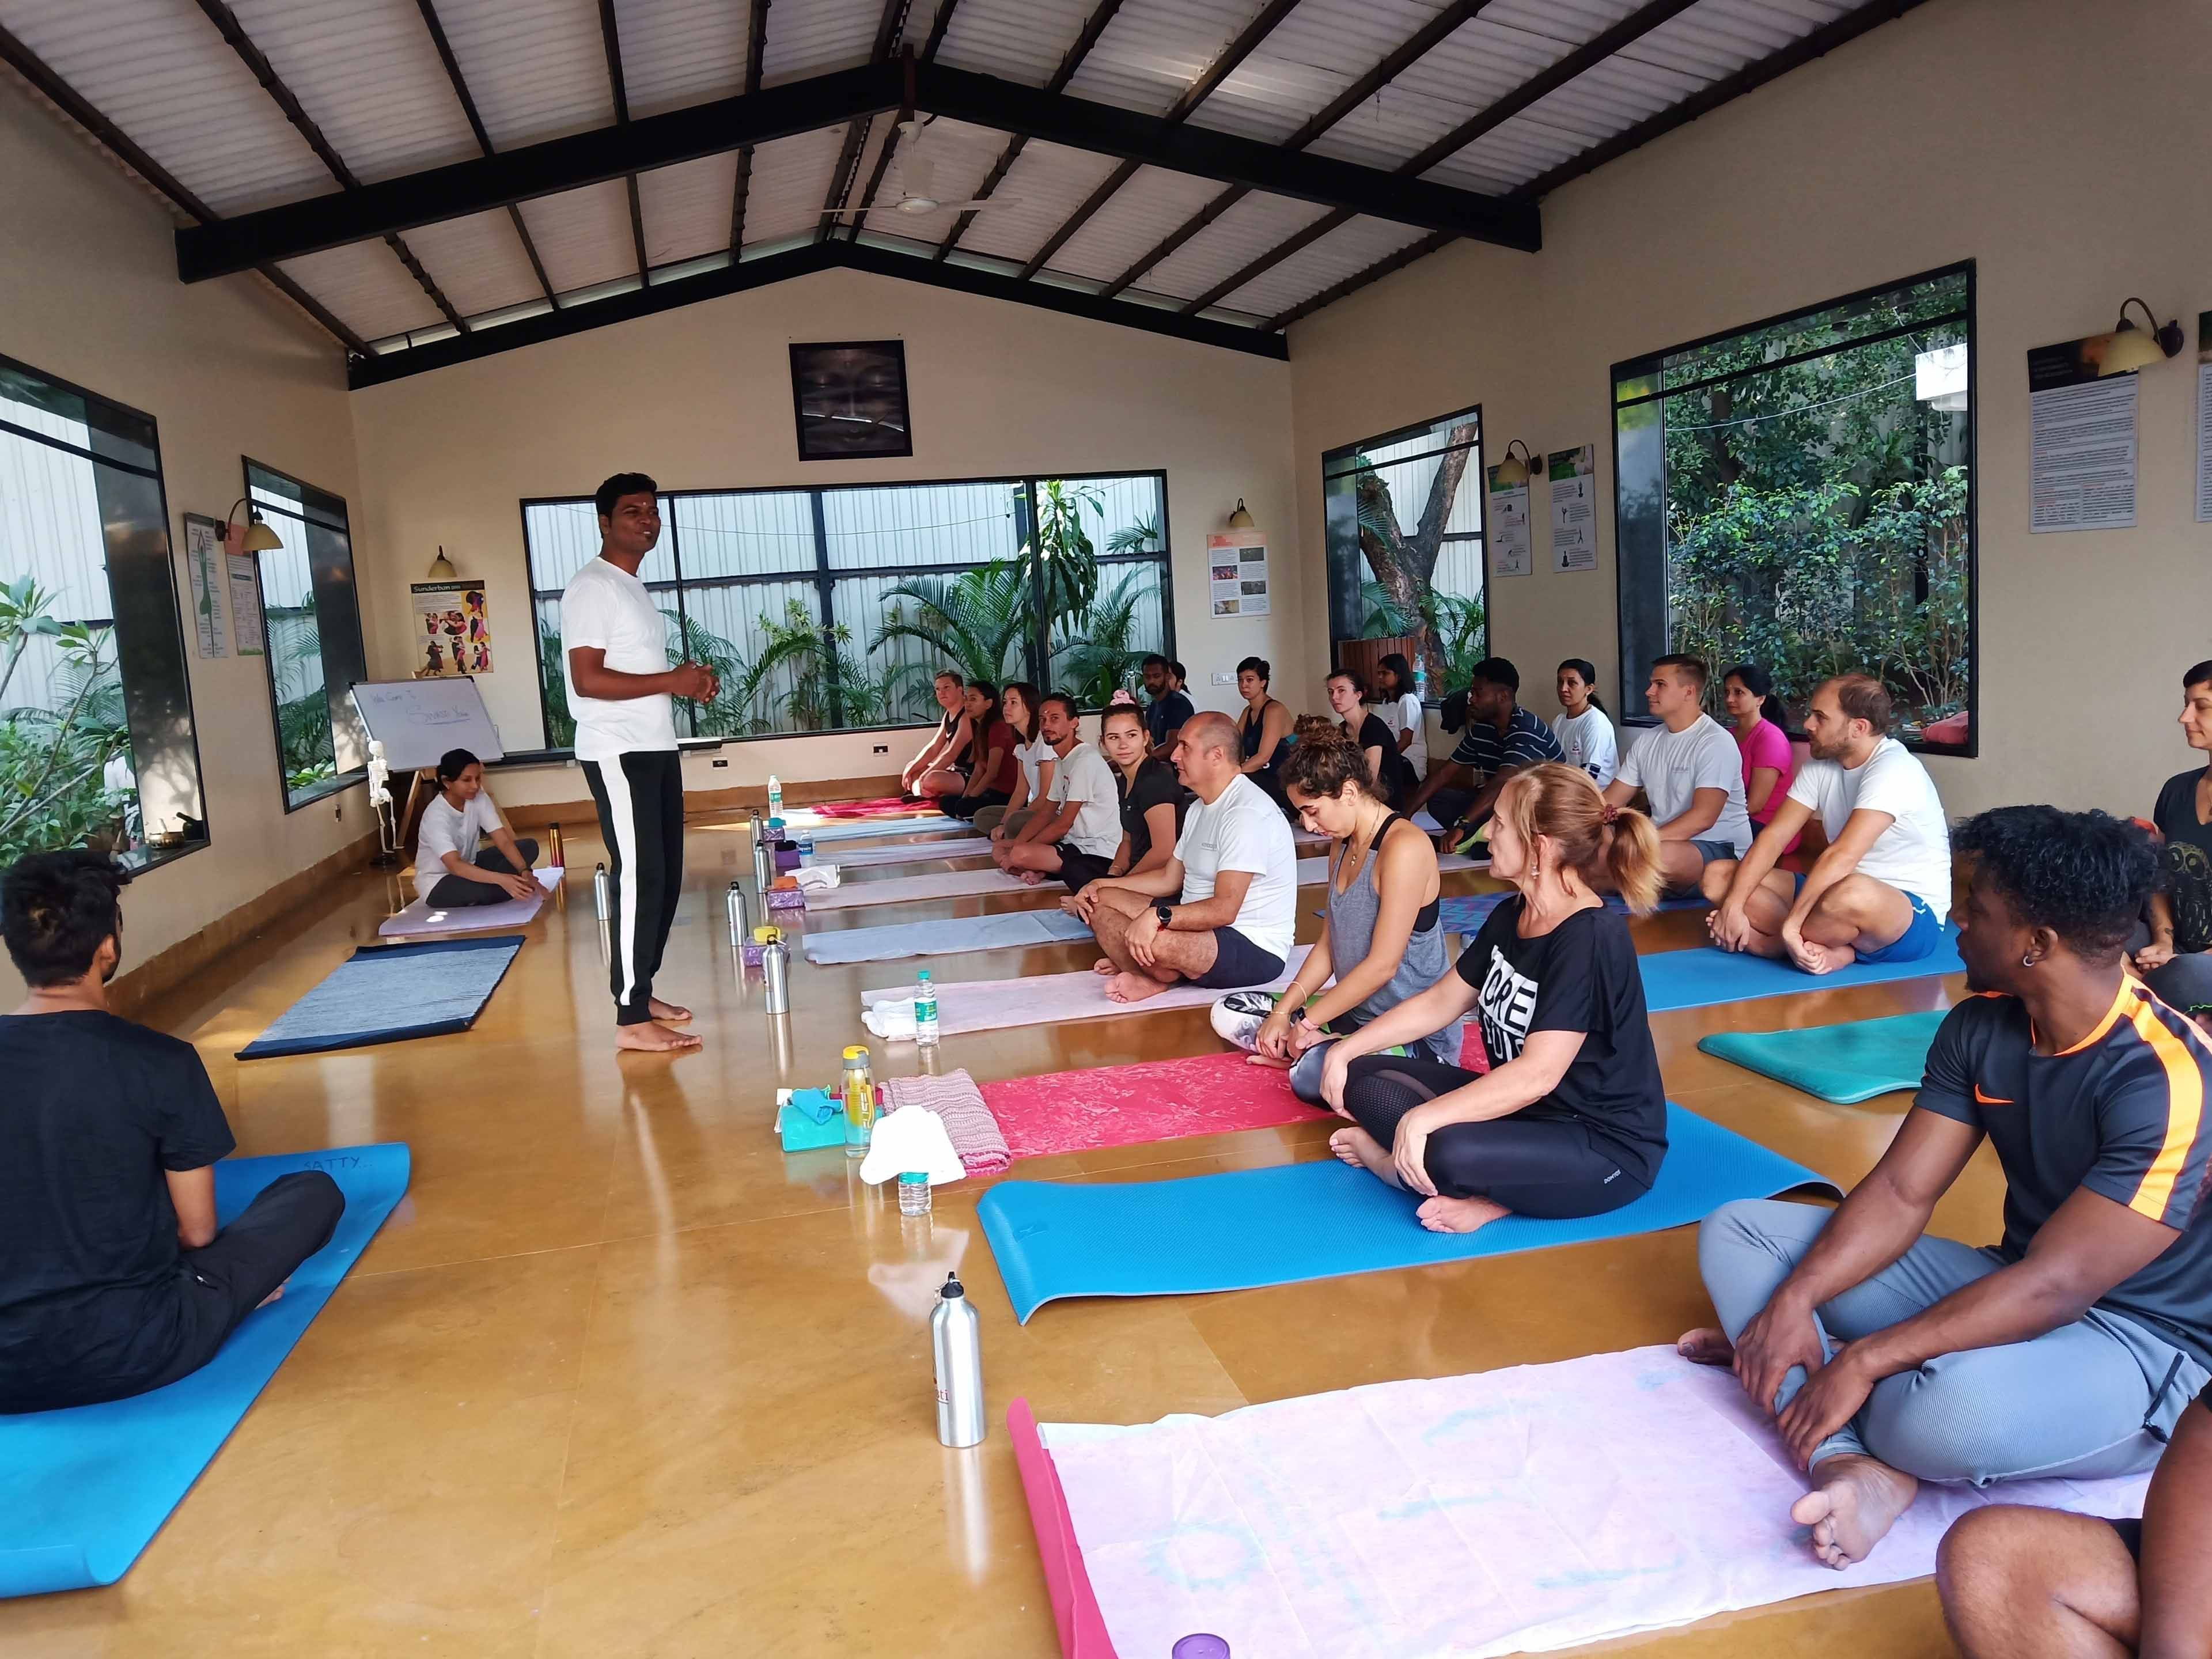 Level 2 Yoga Wellness Instructor Ywi Government Certifications Course In Pune India